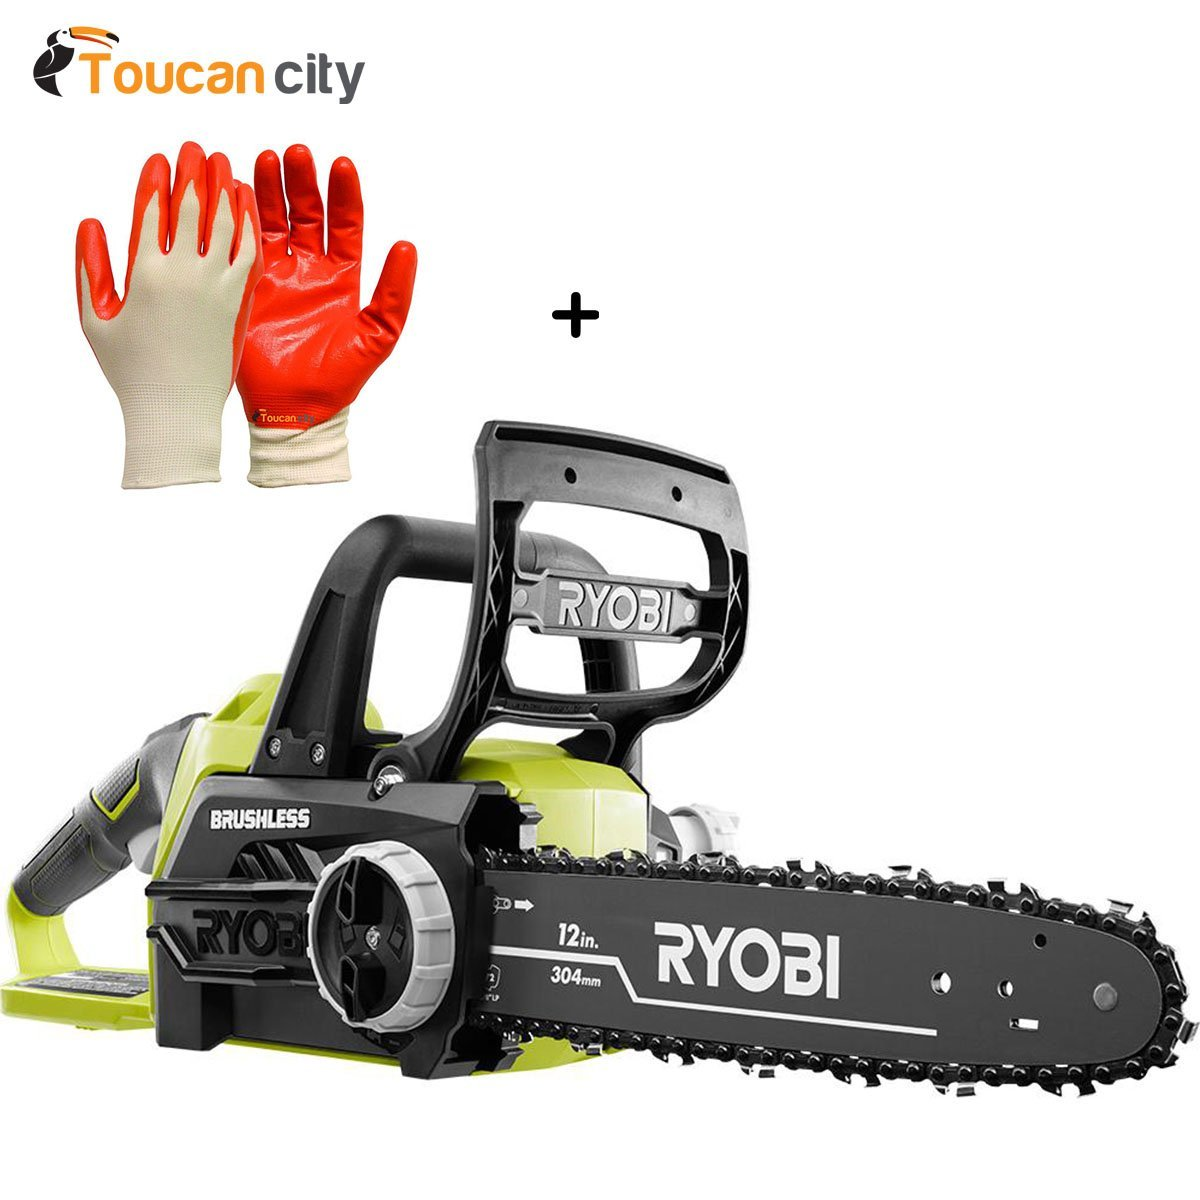 Toucan City Ryobi 12 in. 18-Volt Brushless Lithium-Ion Electric Cordless Chainsaw - Battery and Charger Not Included P548A and Nitrile Dip Gloves(5-Pack)